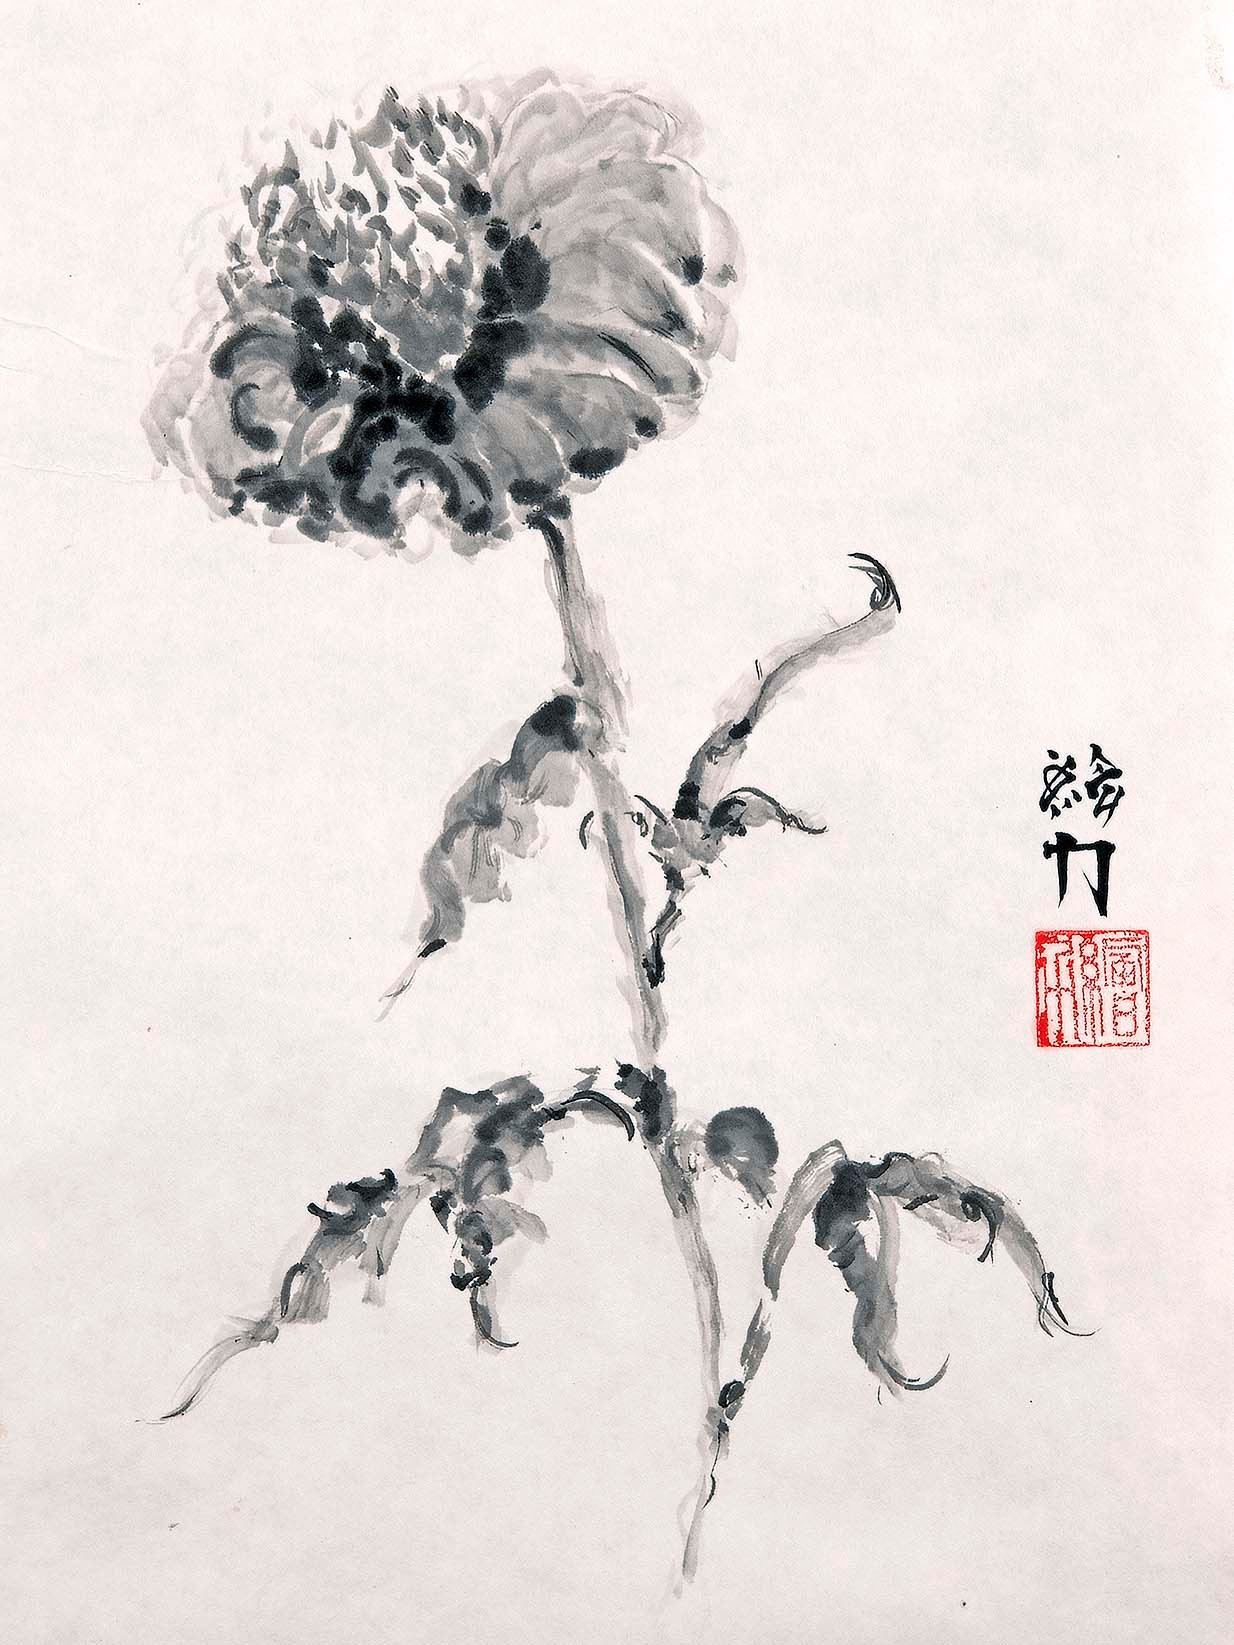 Hombretheartist sumie flower 1 forwebsite th4ea4